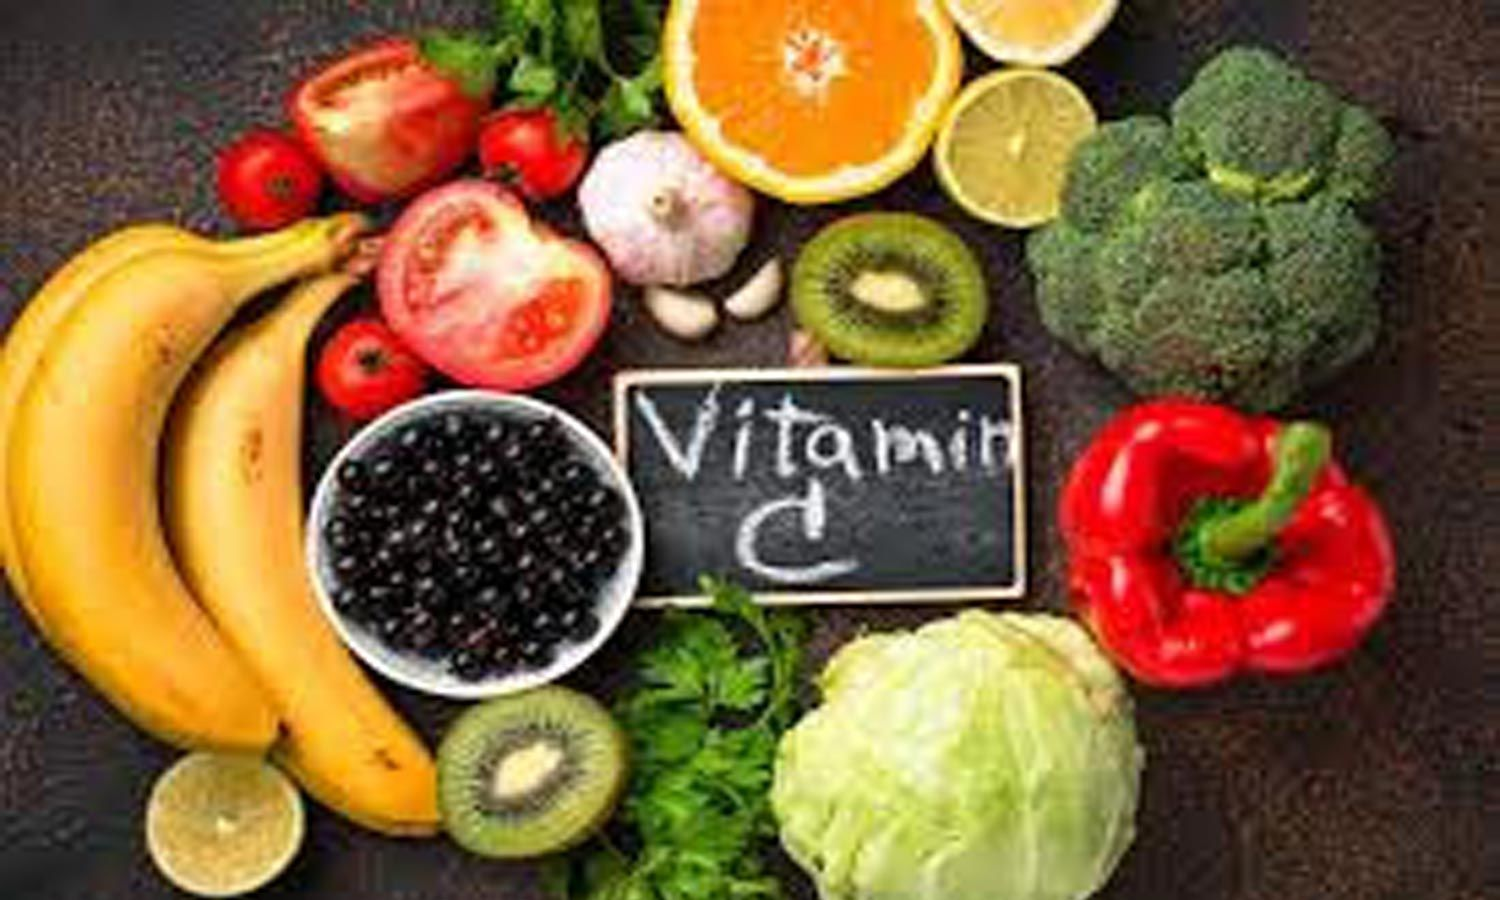 Vitamin C may shorten ventilation time in critically ill patients